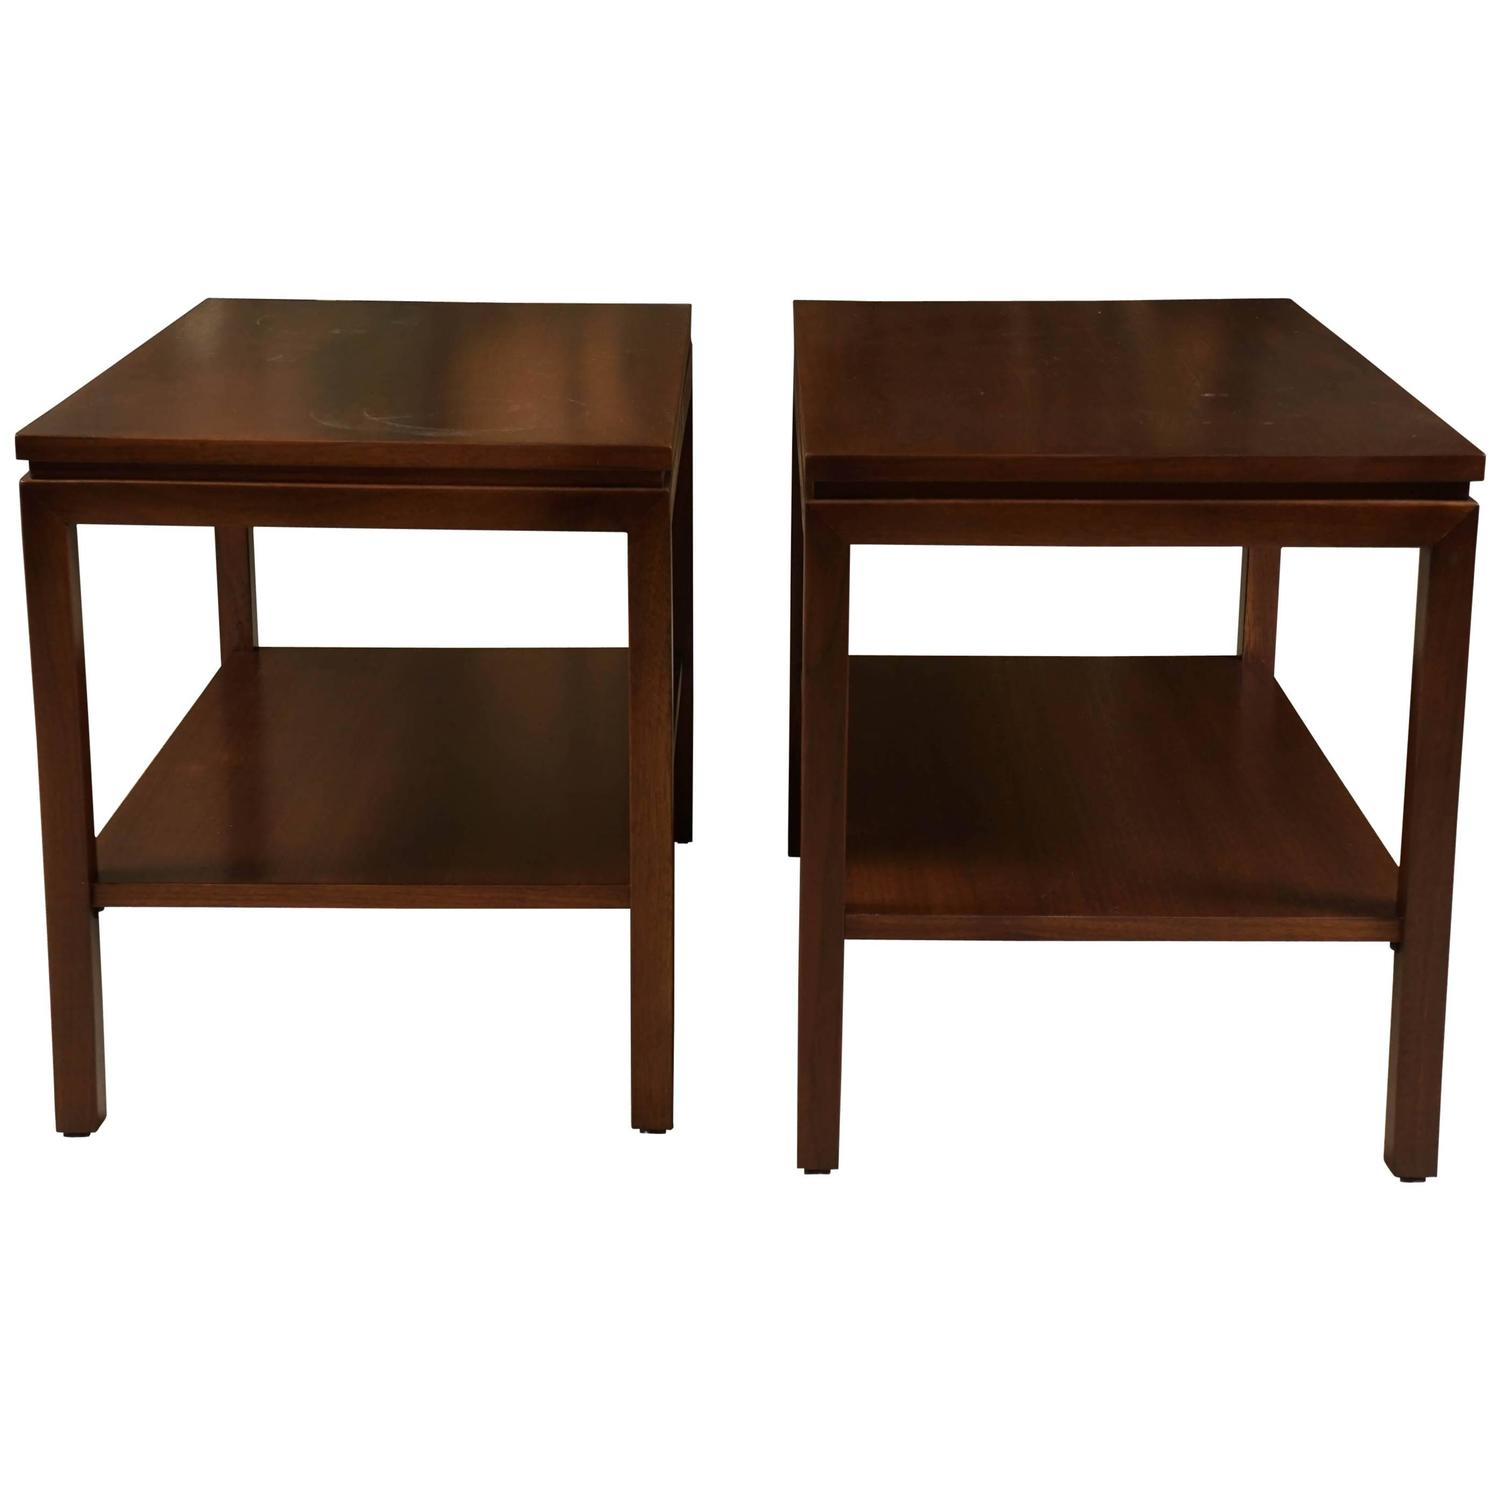 pair of modern walnut end tables with shelves at 1stdibs. Black Bedroom Furniture Sets. Home Design Ideas